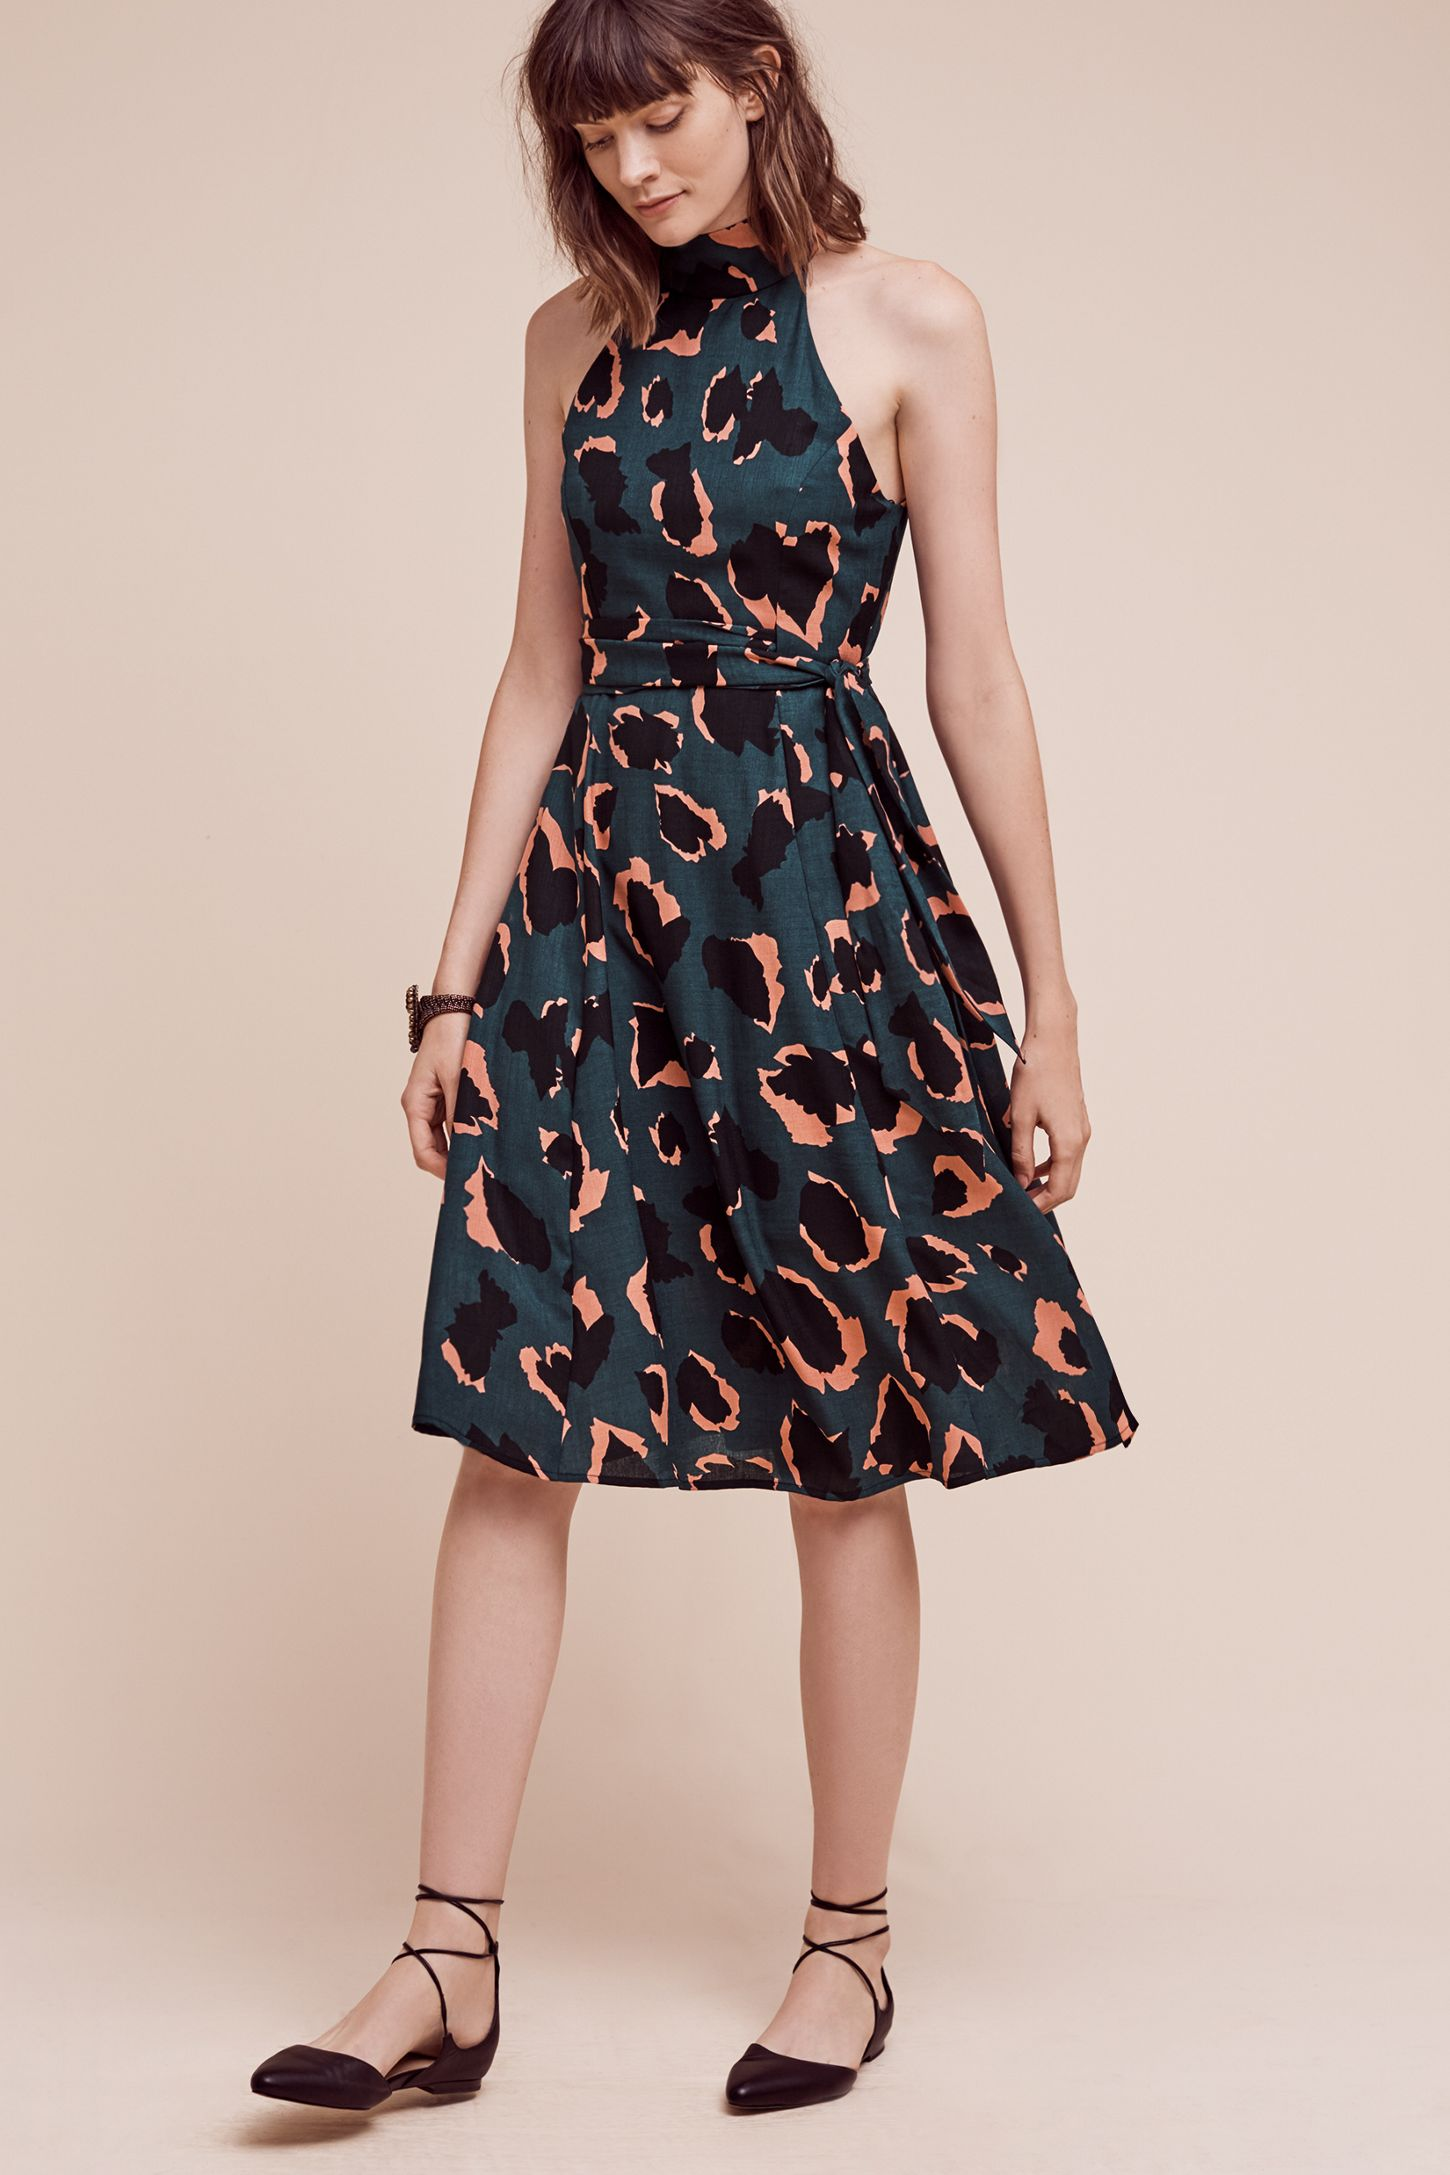 42fe6c0f8454 Leopard Graphic Dress | Anthropologie